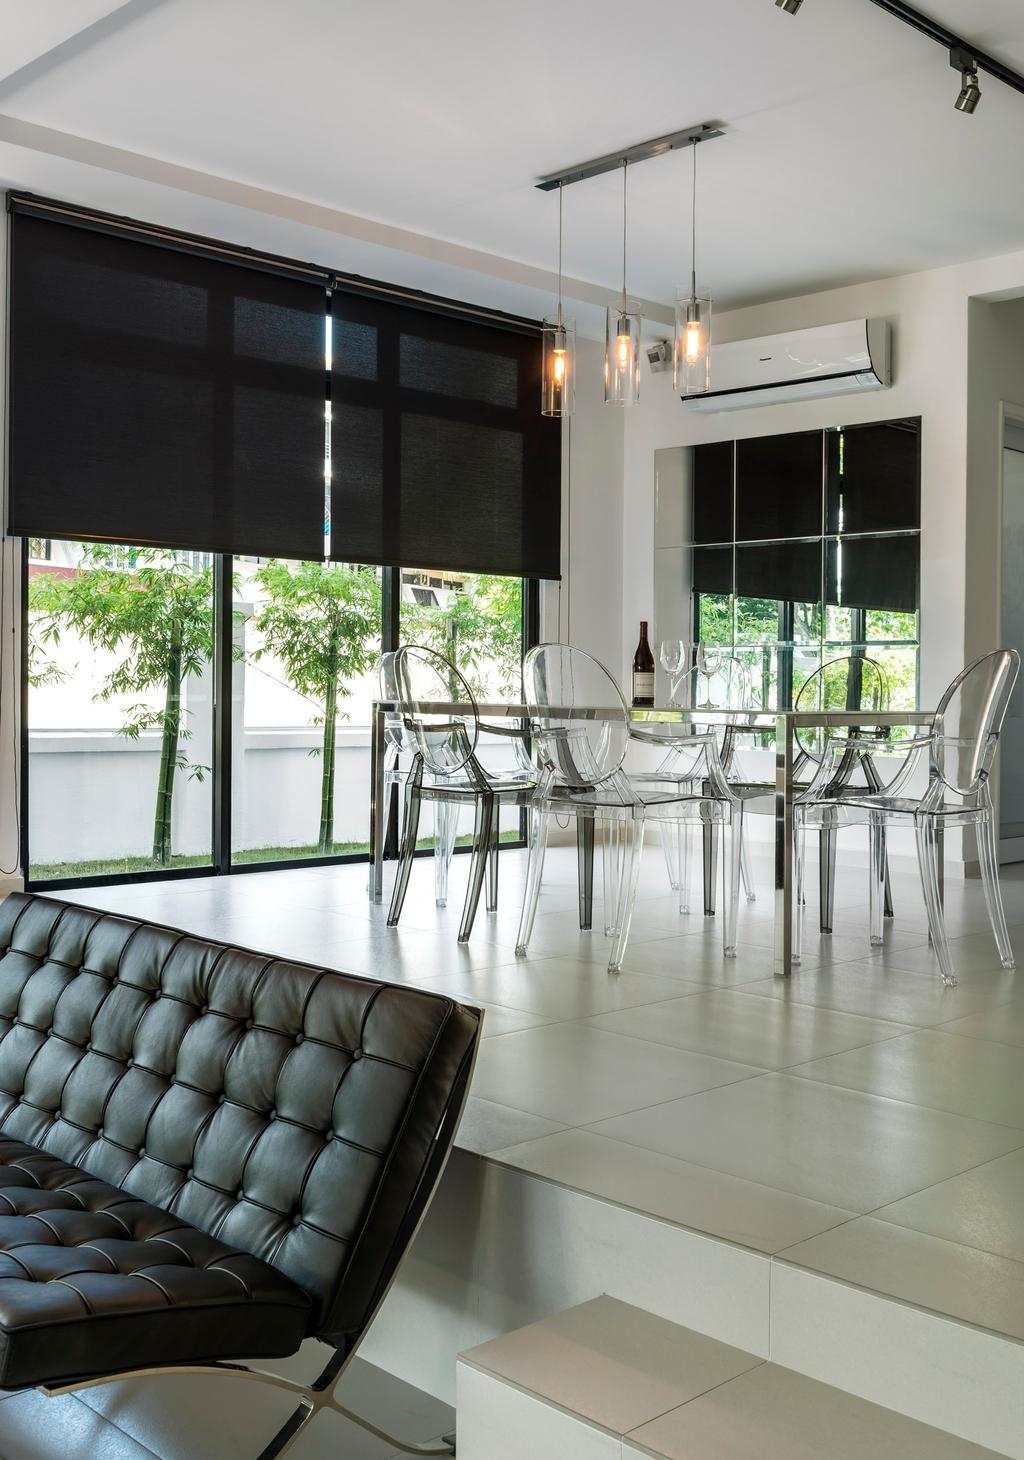 Modern, Landed, Dining Room, Sunbird Avenue (Changi), Interior Designer, Third Avenue Studio, Dining Table, Table, Chair, Blinds, Sofa, Quilted, Loveseat, Full Length Windows, Mirror, Tile, Tiles, Steps, Hanging Light, Lighting, Pendant Light, White, Black, Flora, Jar, Plant, Potted Plant, Pottery, Vase, Furniture